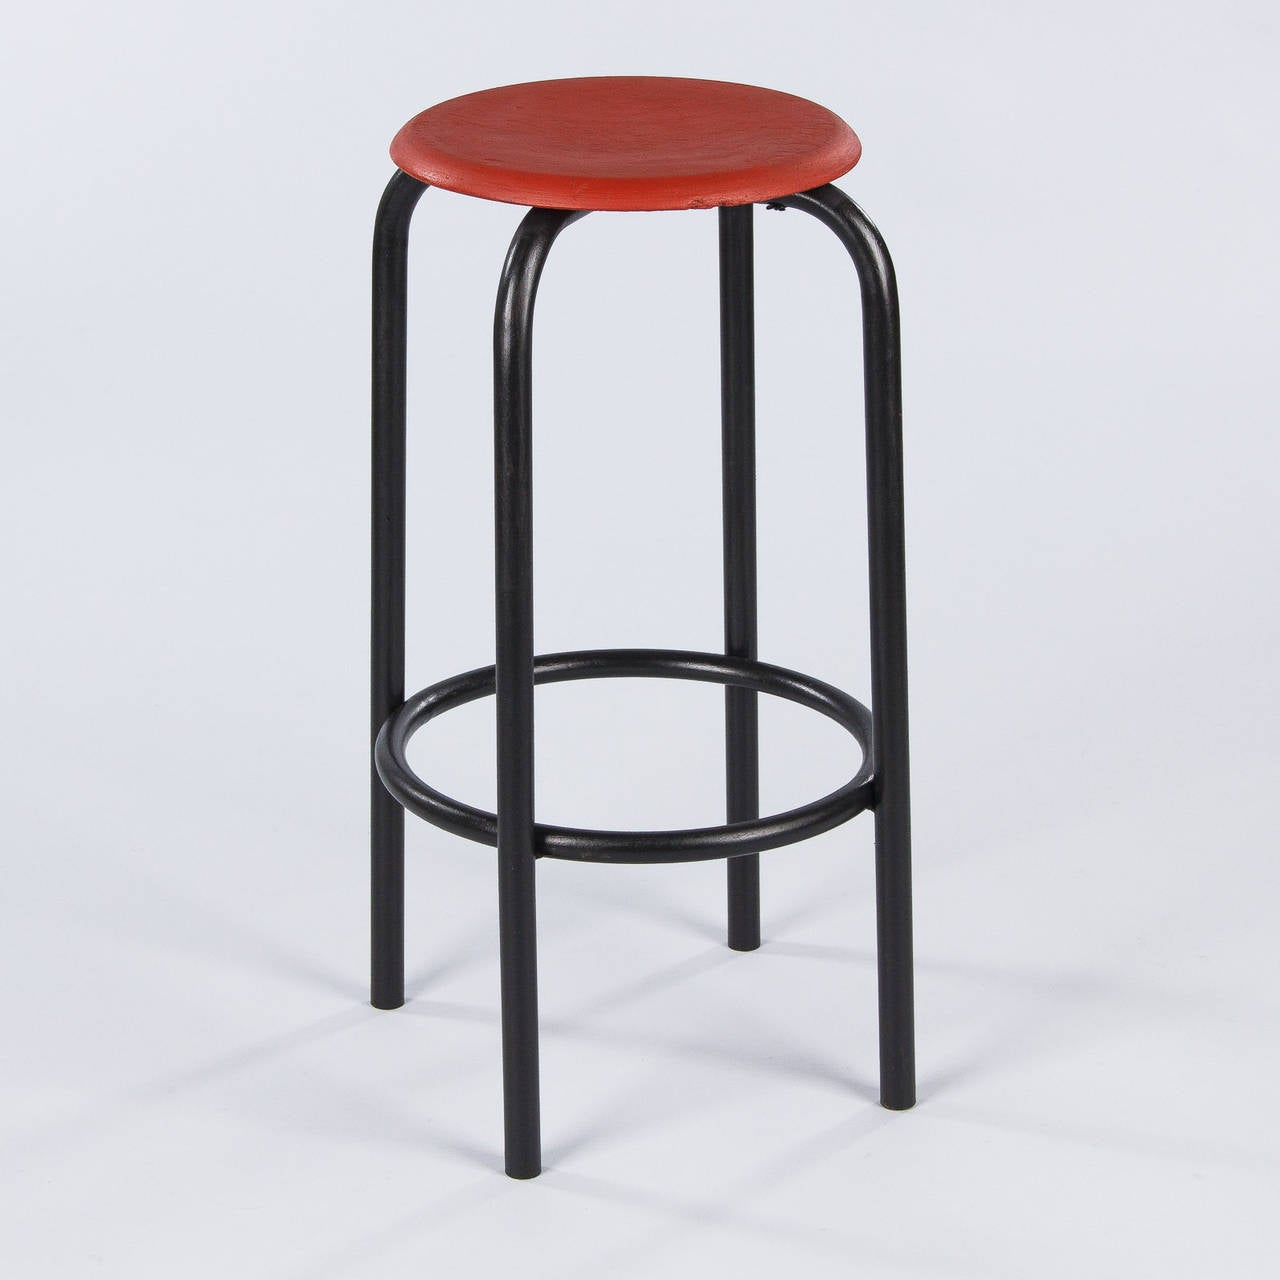 20th Century French Vintage Industrial Red and Black Stool, 1950s